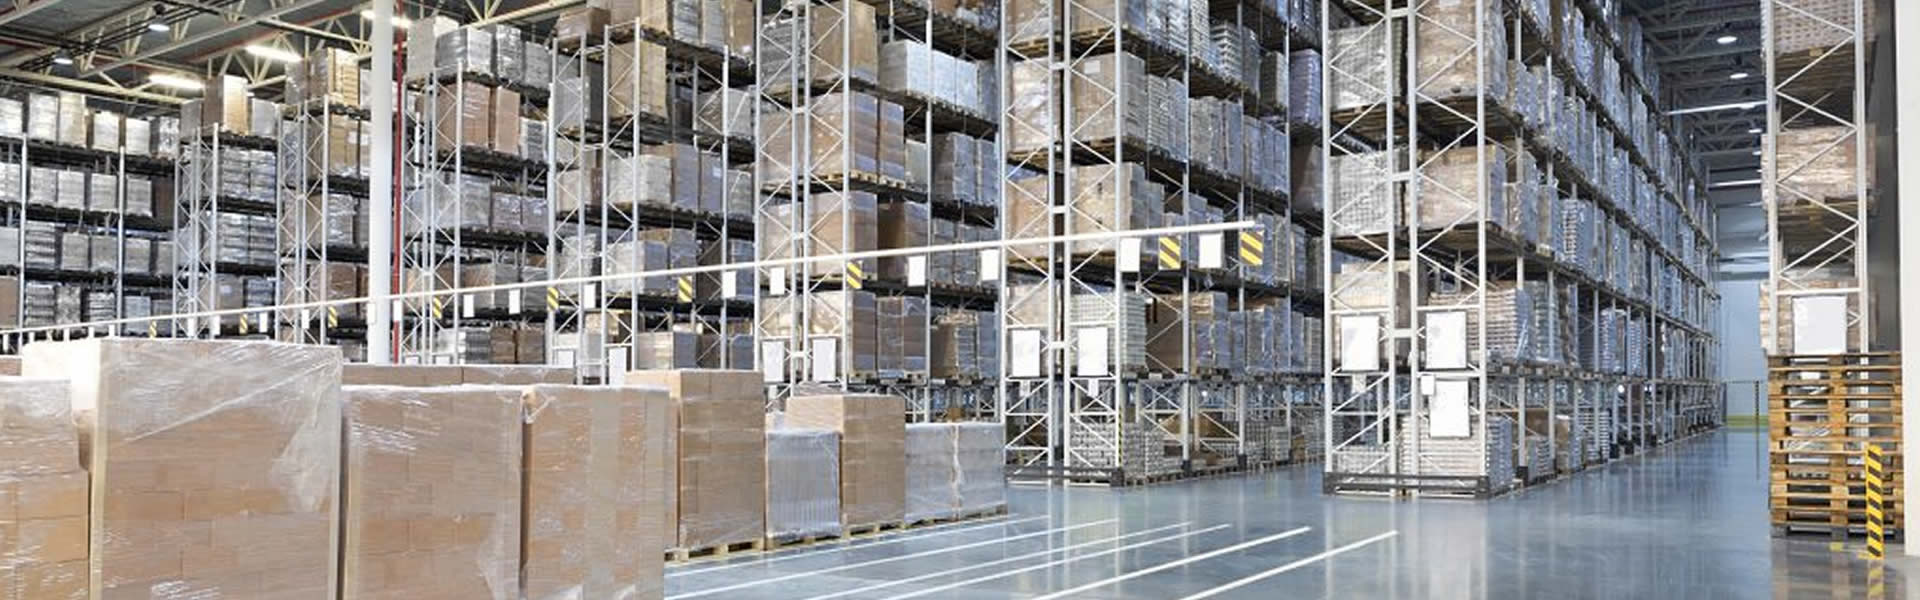 industrial warehouses air conditioning services miami